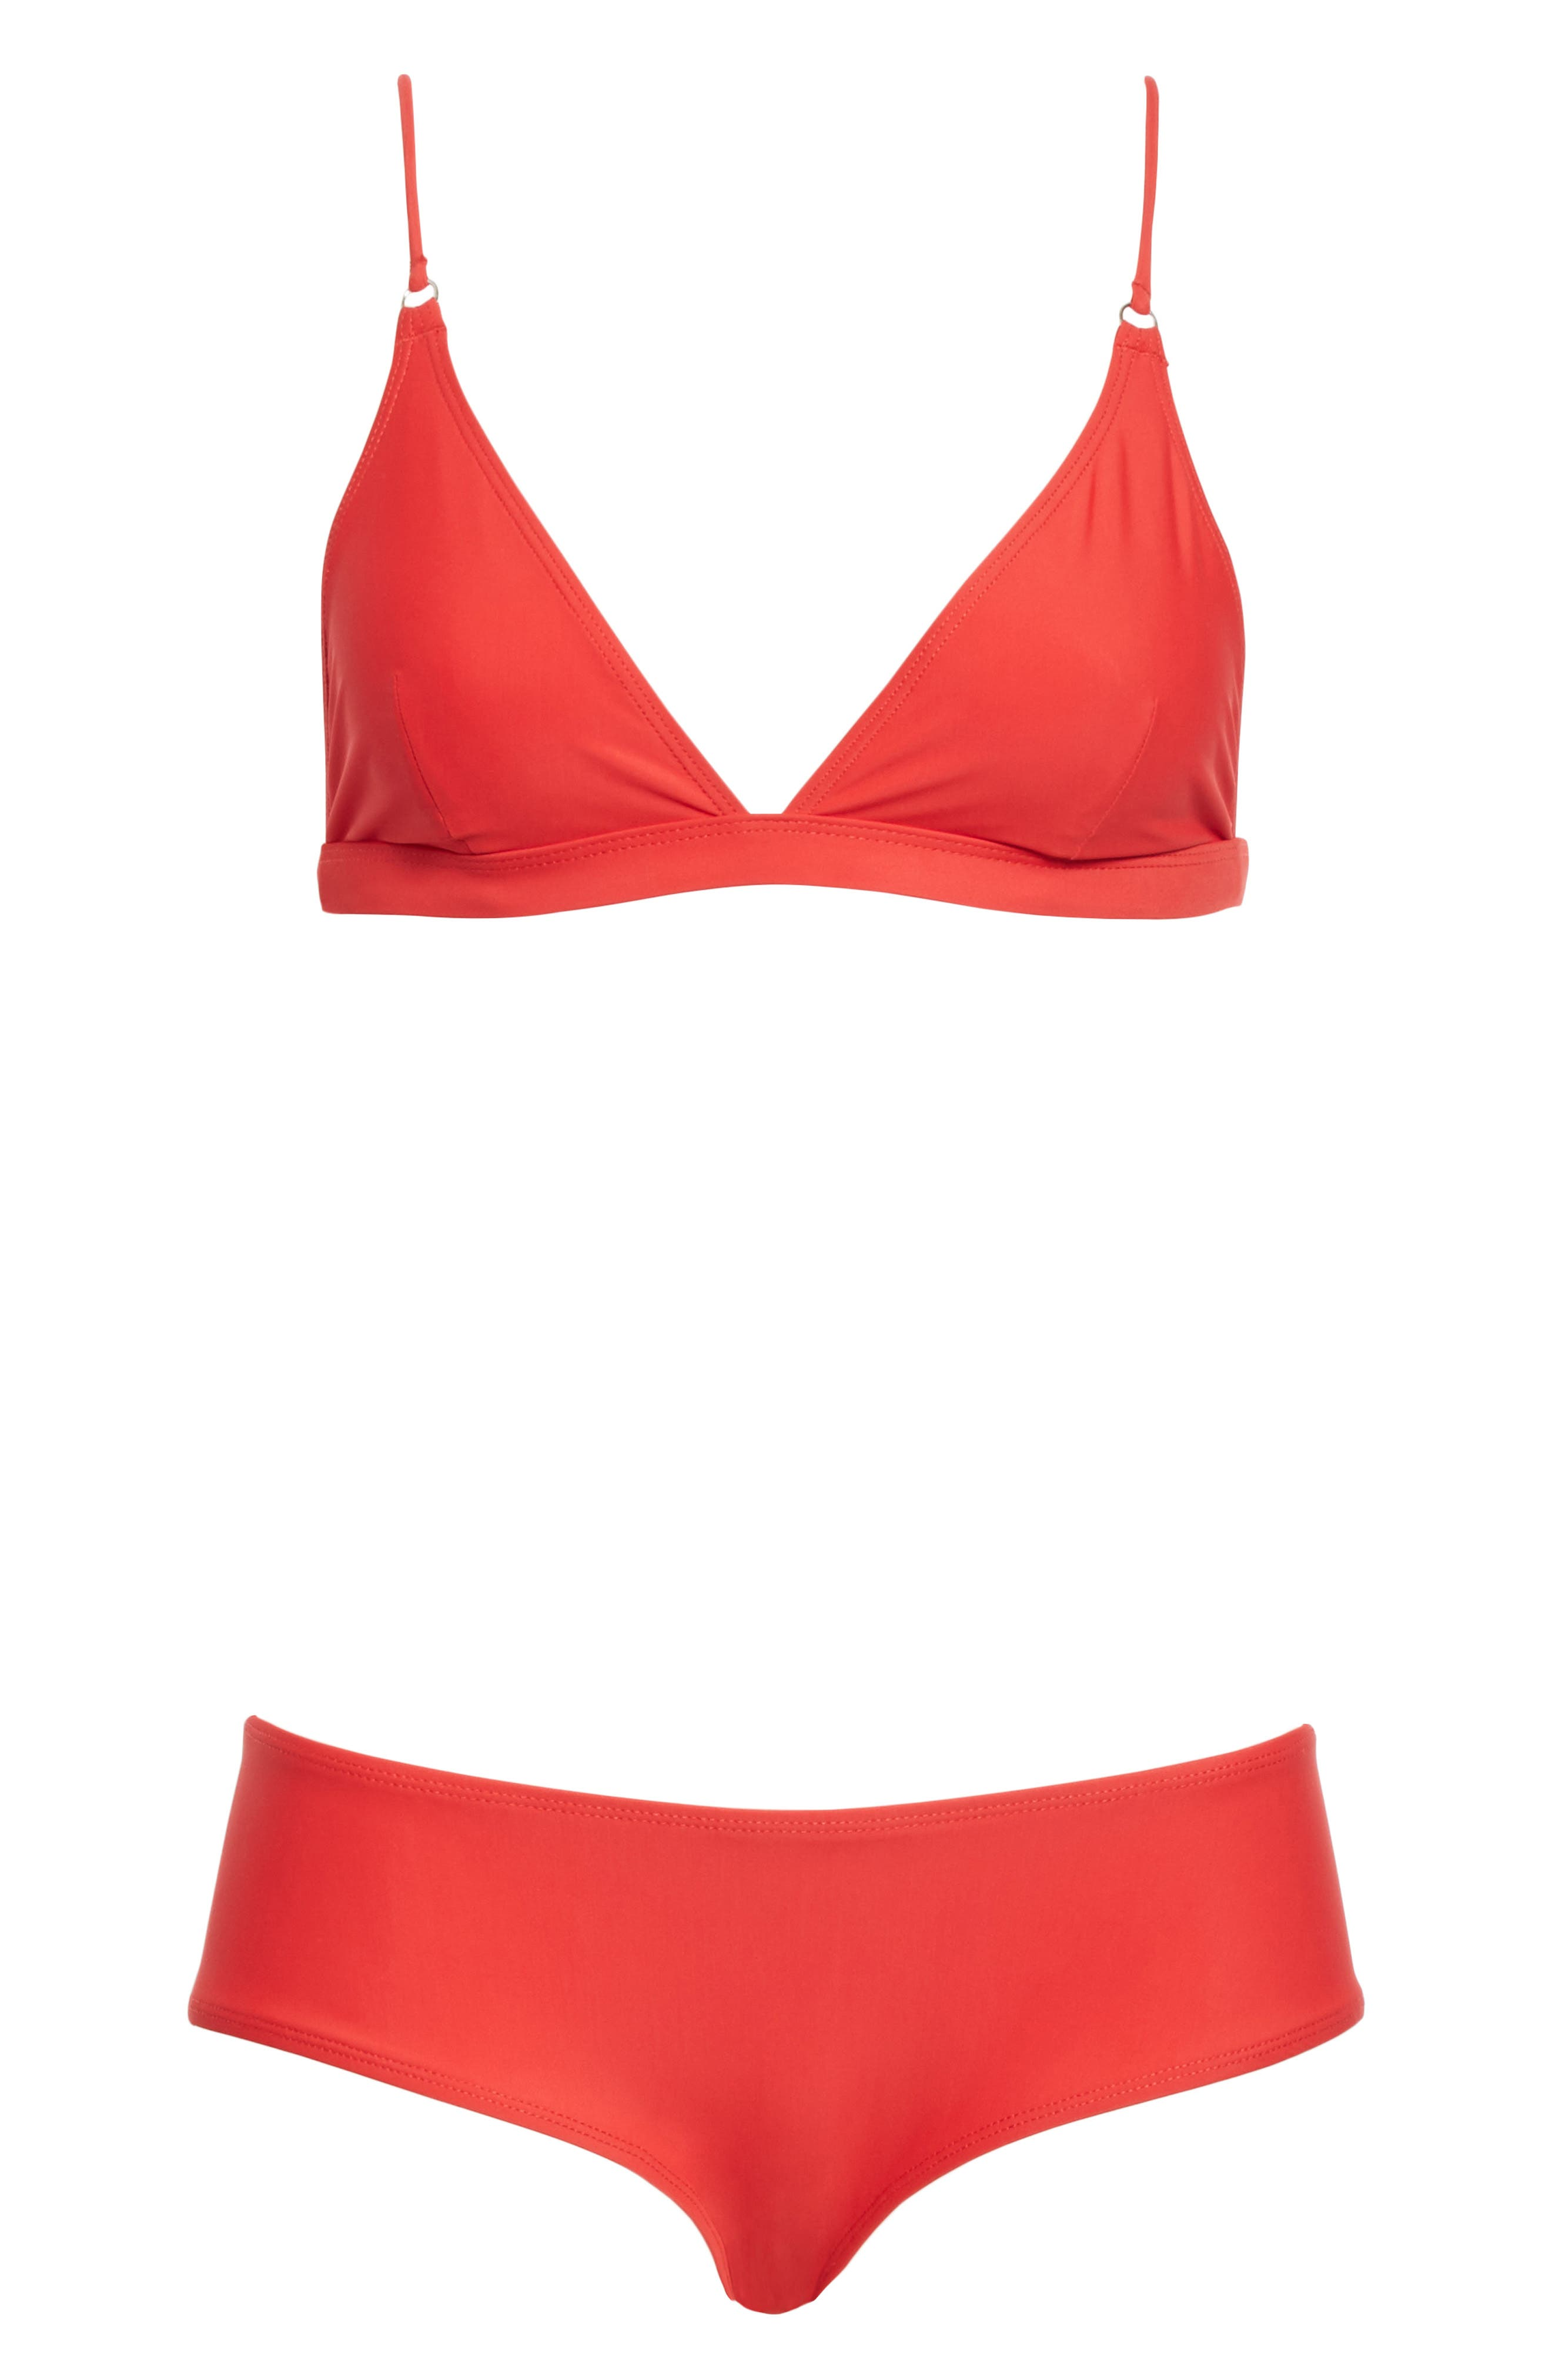 Hedea Bikini Set,                             Alternate thumbnail 6, color,                             Red